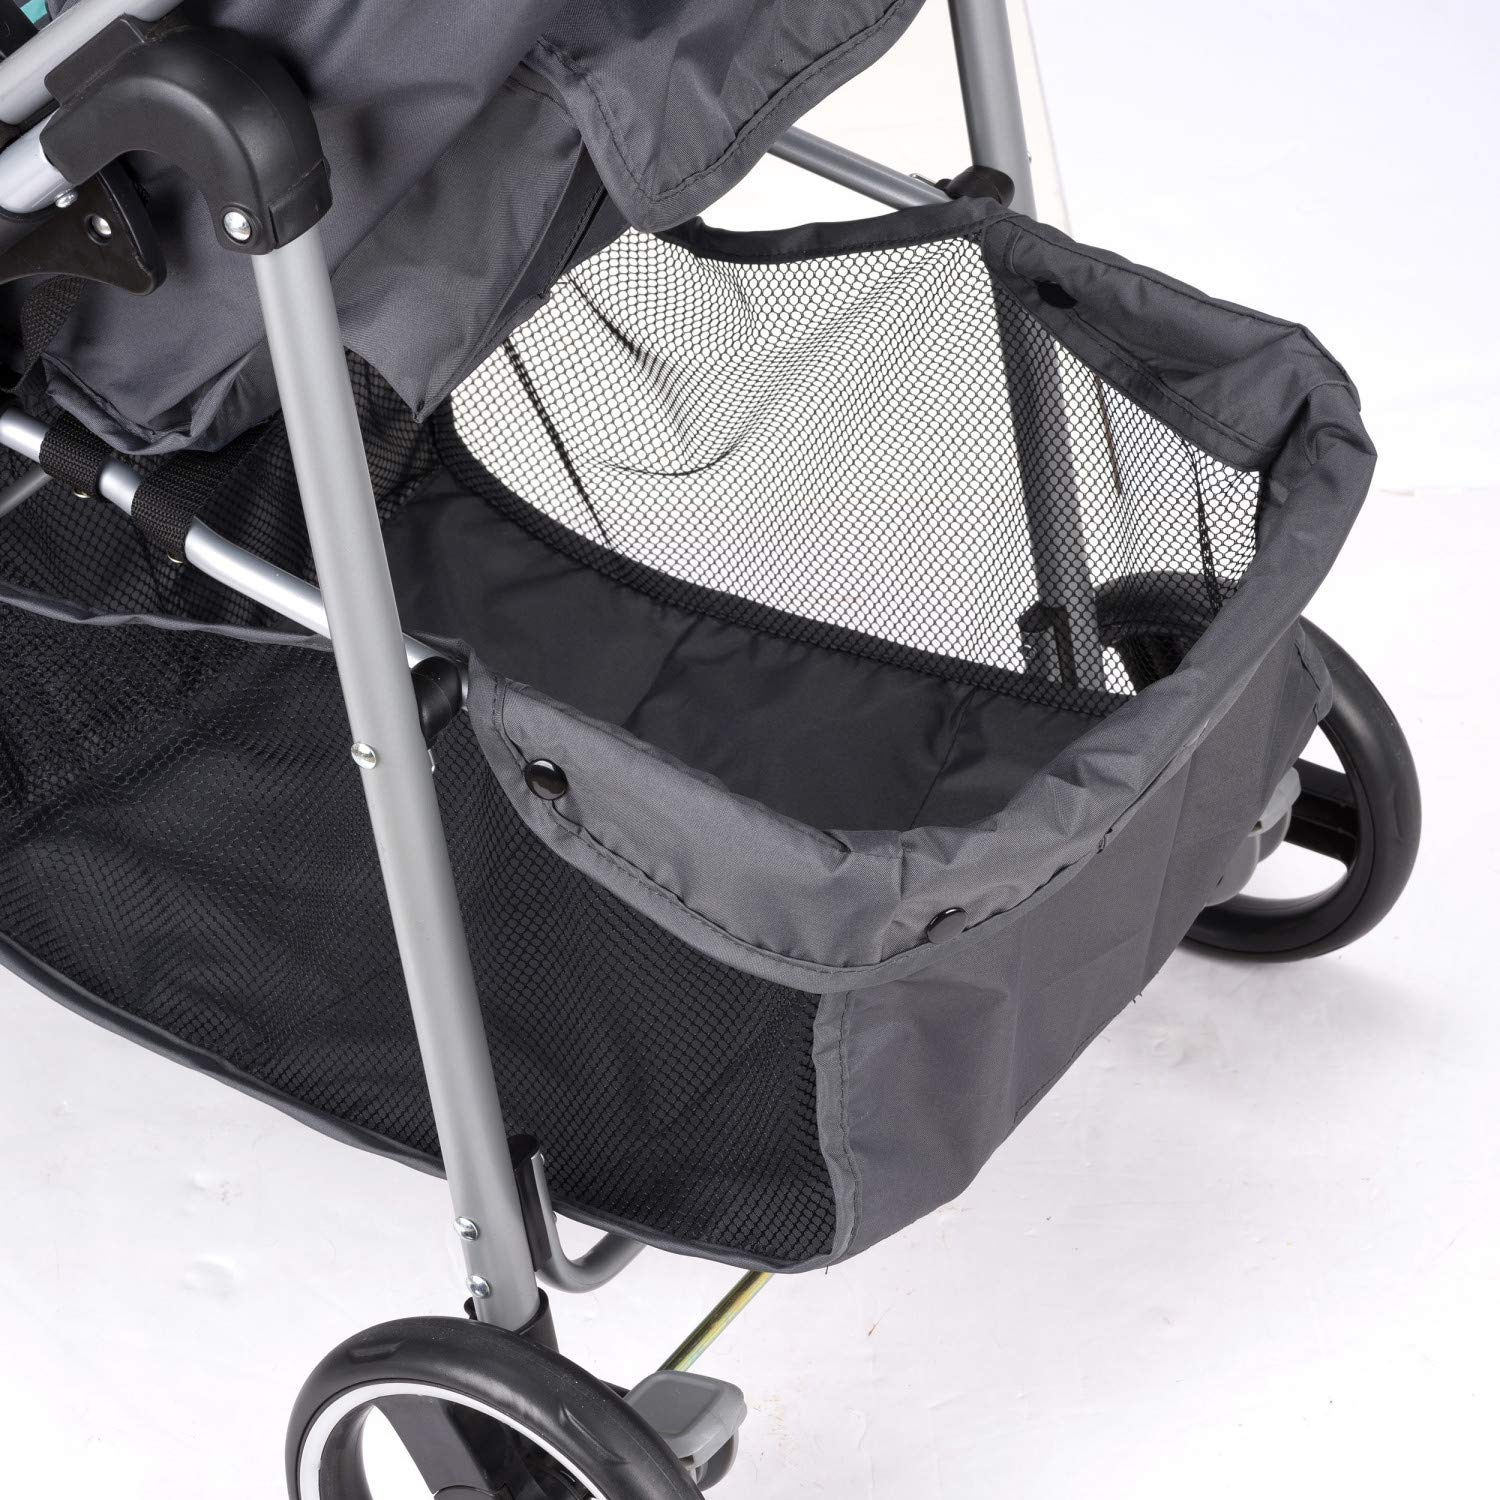 Evenflo Vive Travel System with Embrace Infant Car Seat, Spearmint Spree by Evenflo (Image #11)